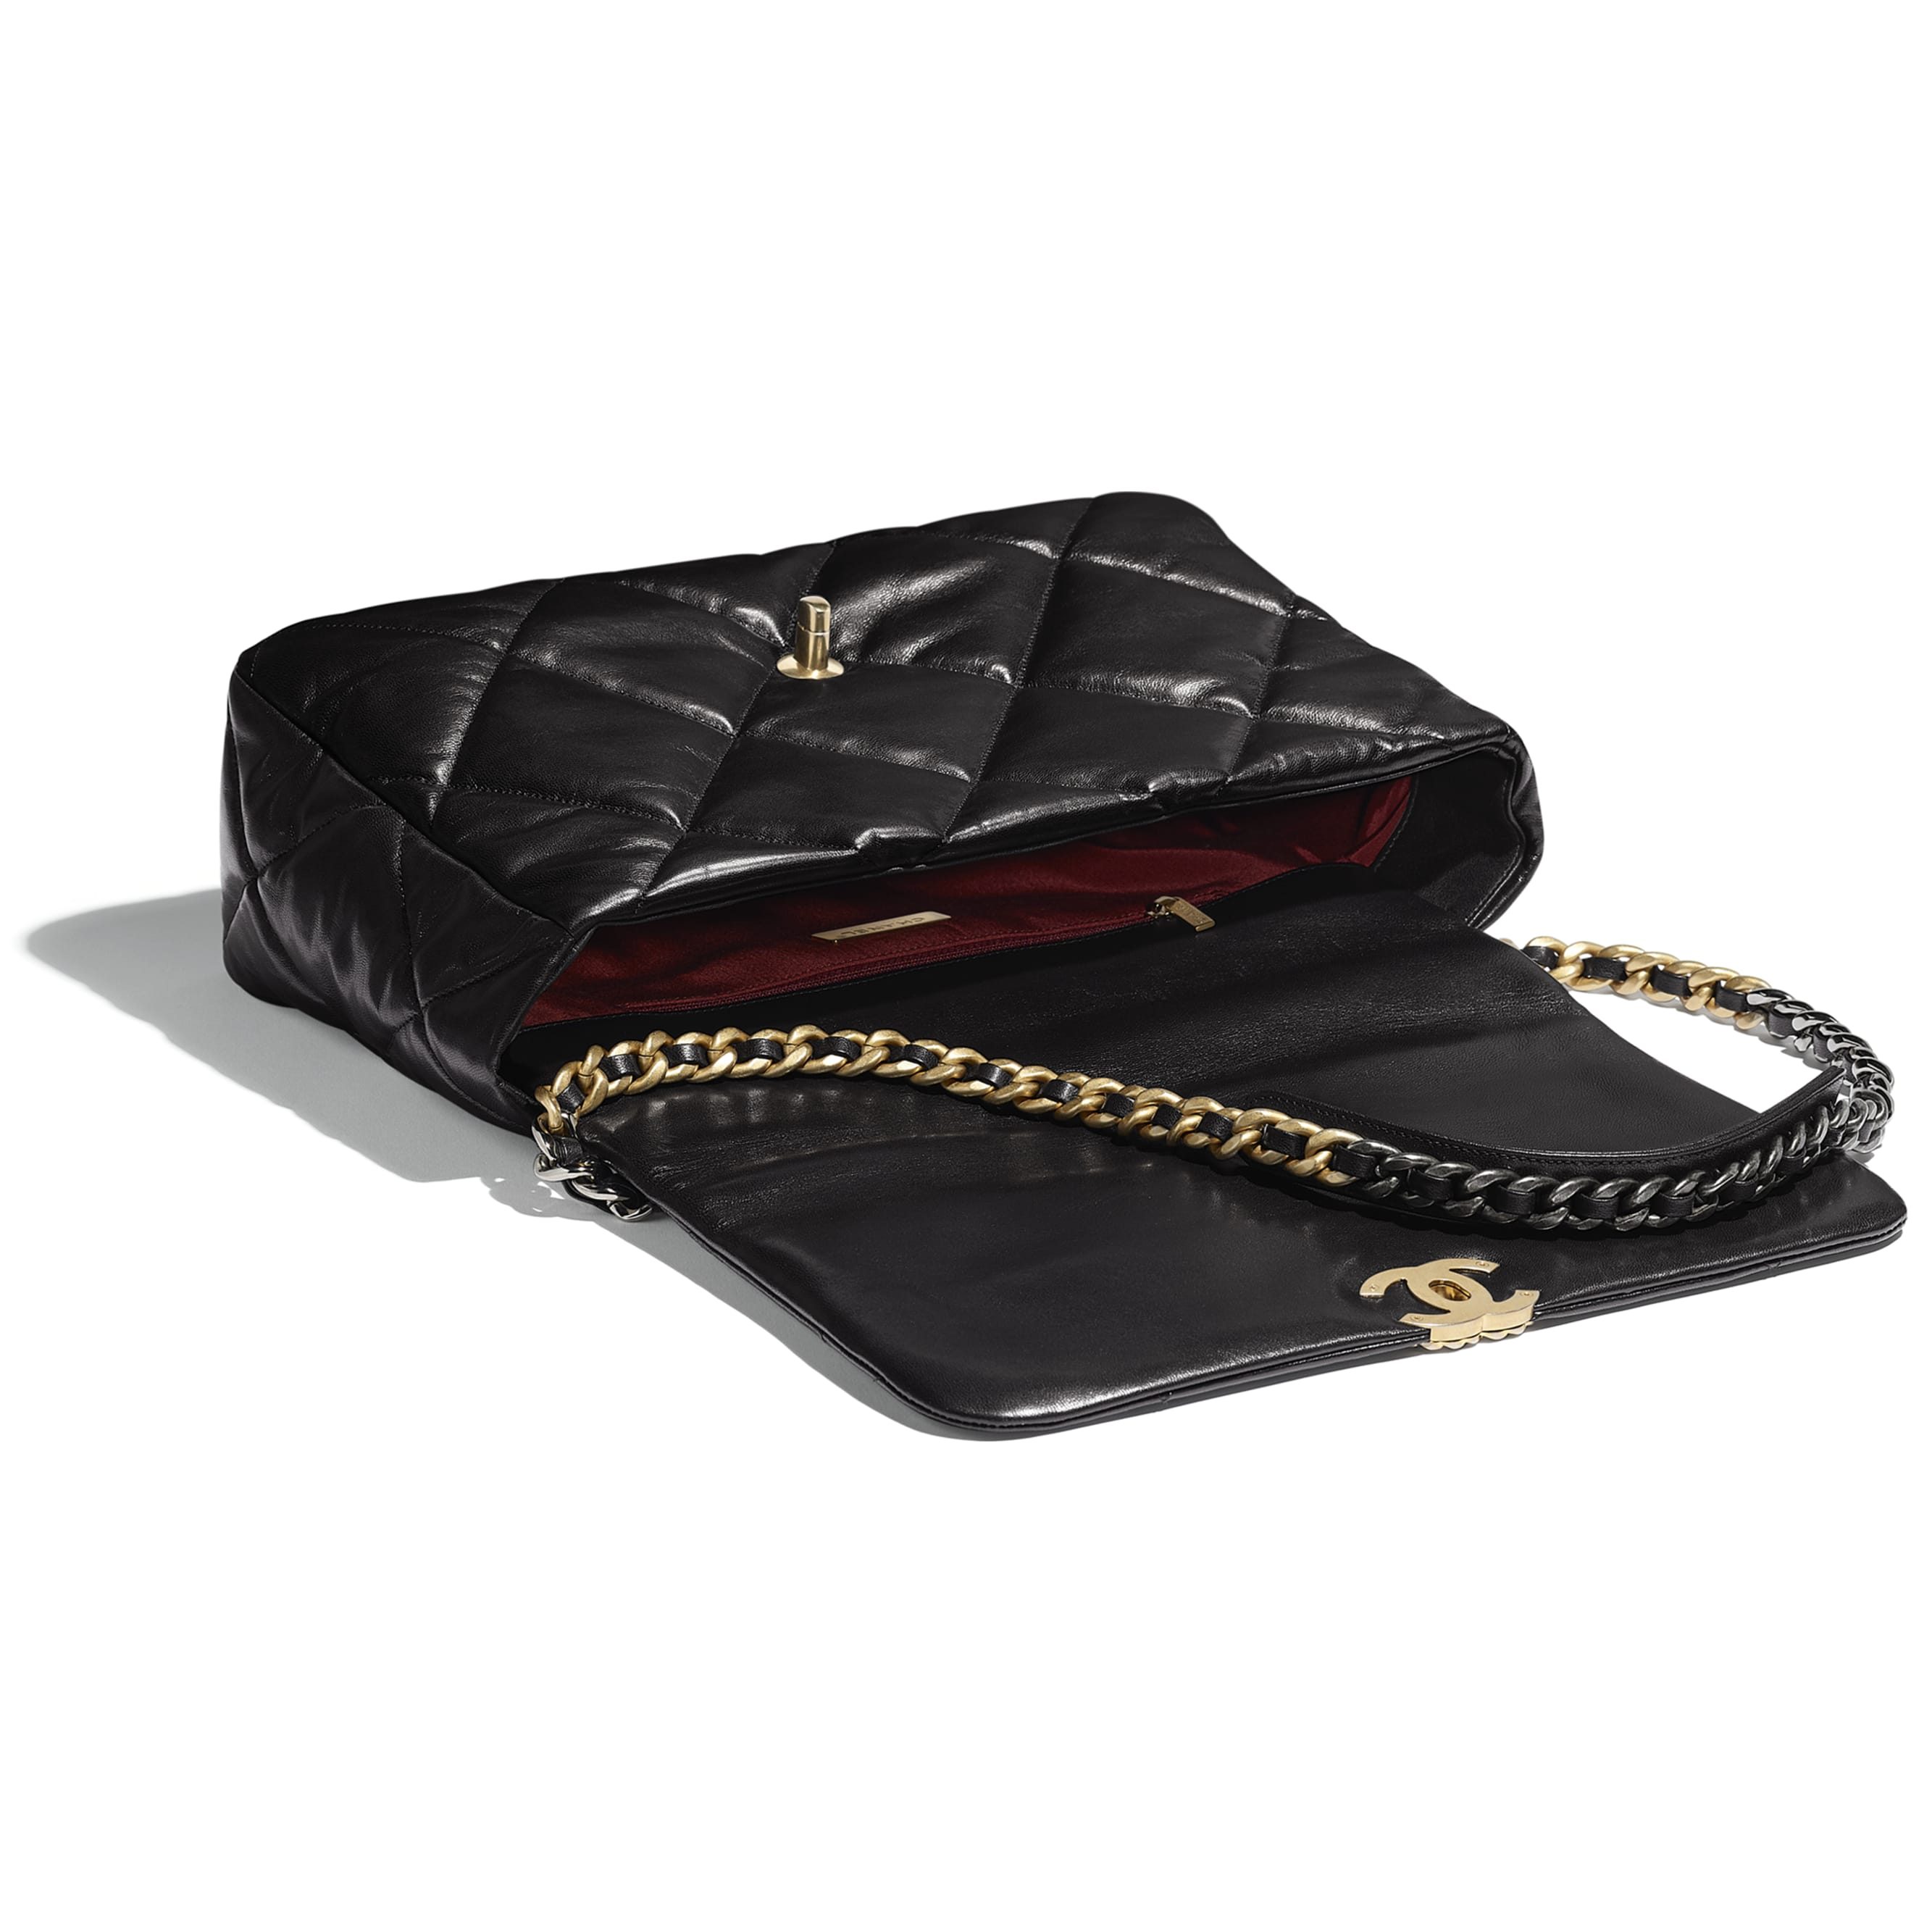 CHANEL 19 Maxi Flap Bag - Black - Goatskin, Gold-Tone, Silver-Tone & Ruthenium-Finish Metal - Other view - see standard sized version